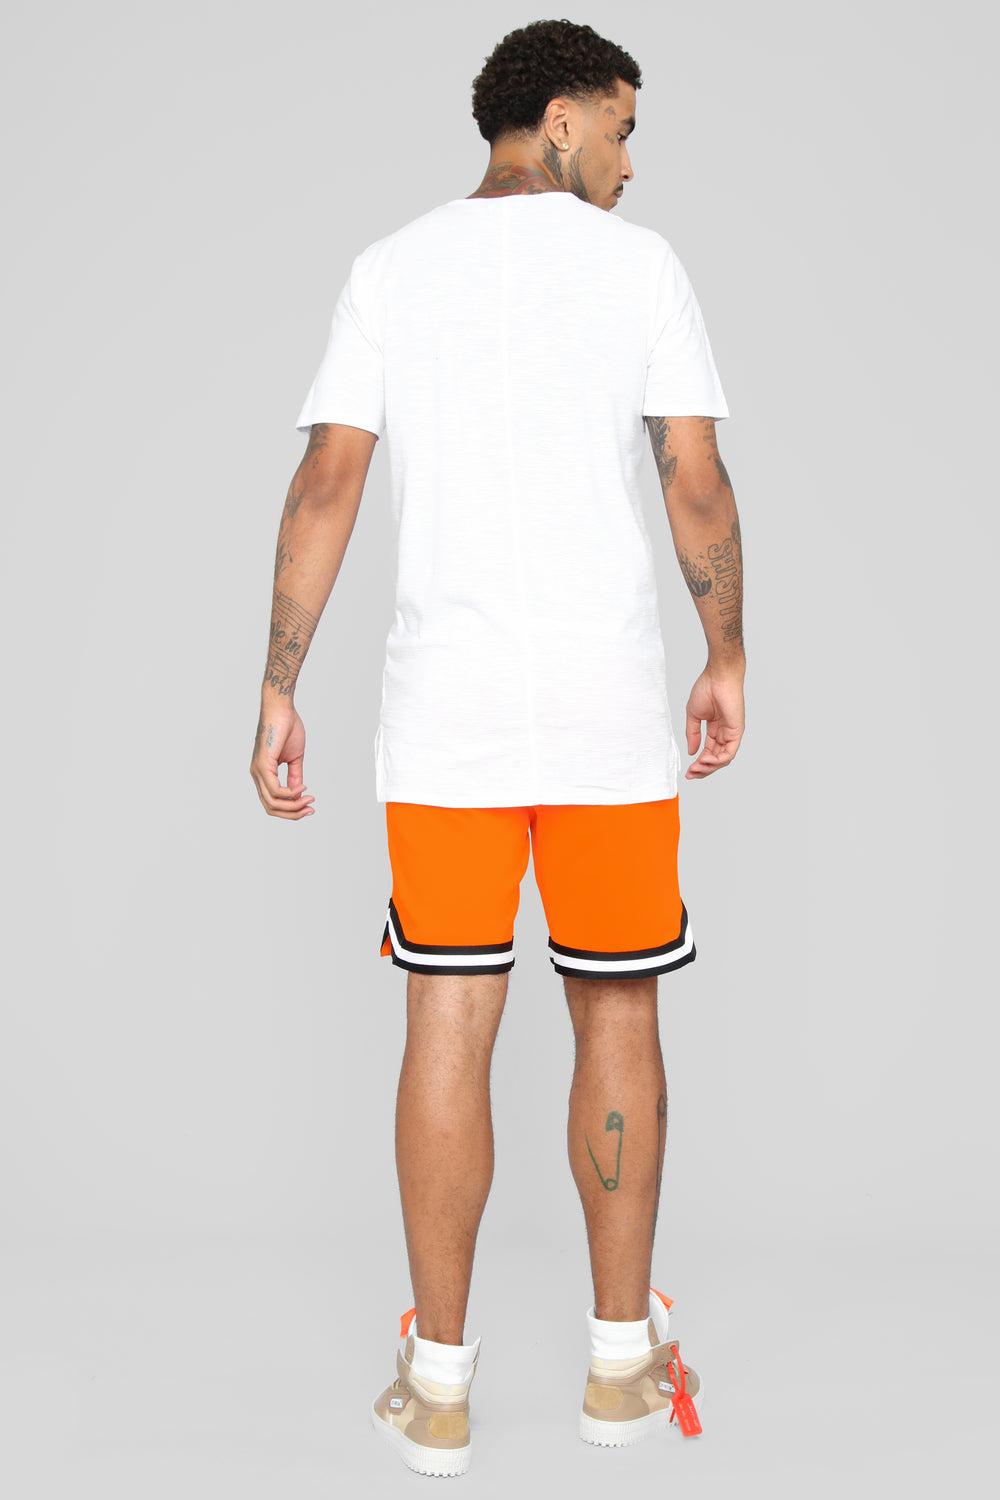 Duval Basketball Shorts - Orange